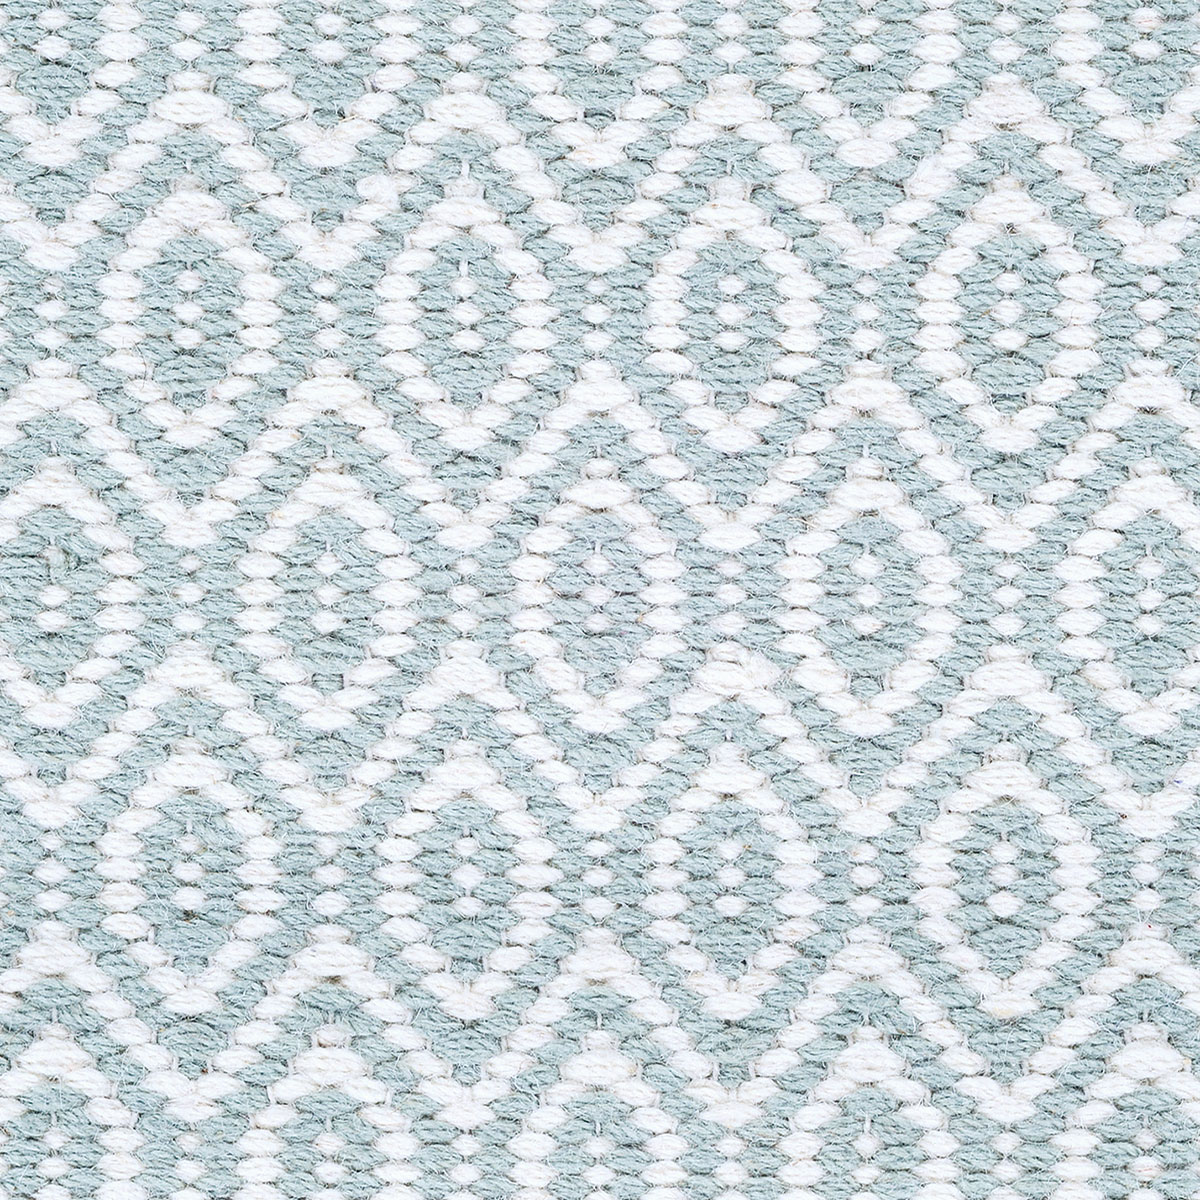 majestic-diamond_wool_broadloom_patterson-flynn-martin_pfm